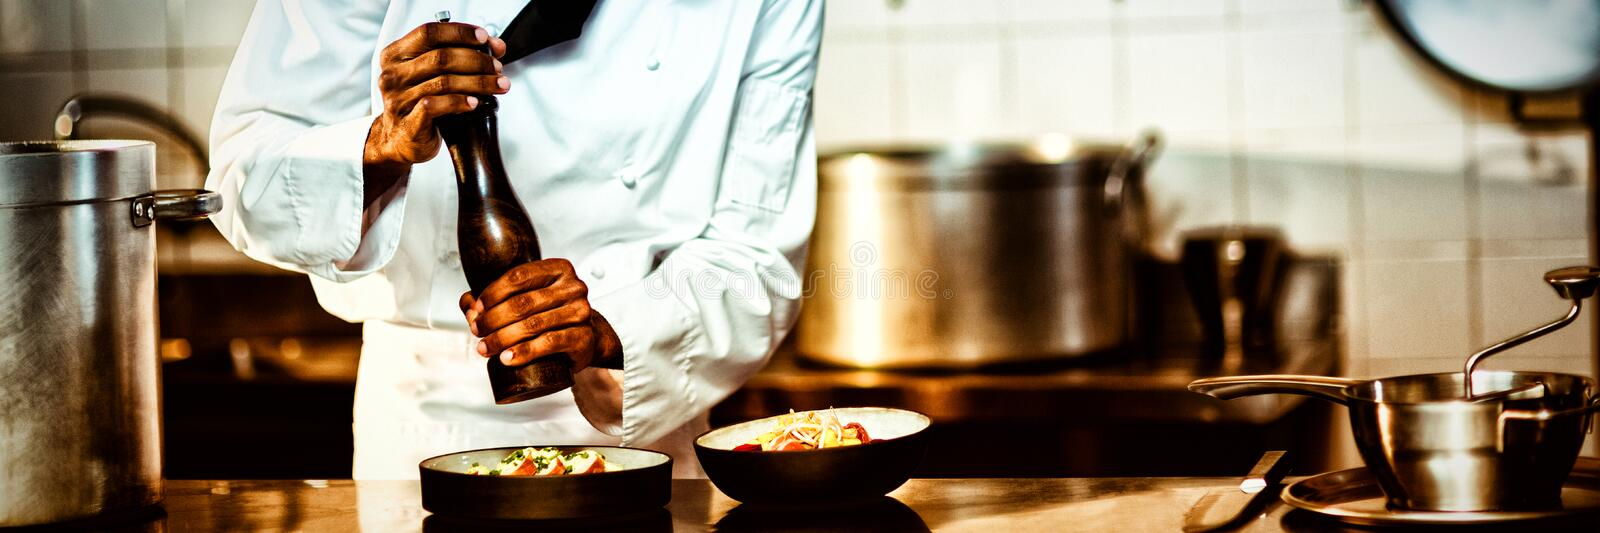 Chef sprinkling pepper on a meal. In commercial kitchen stock image